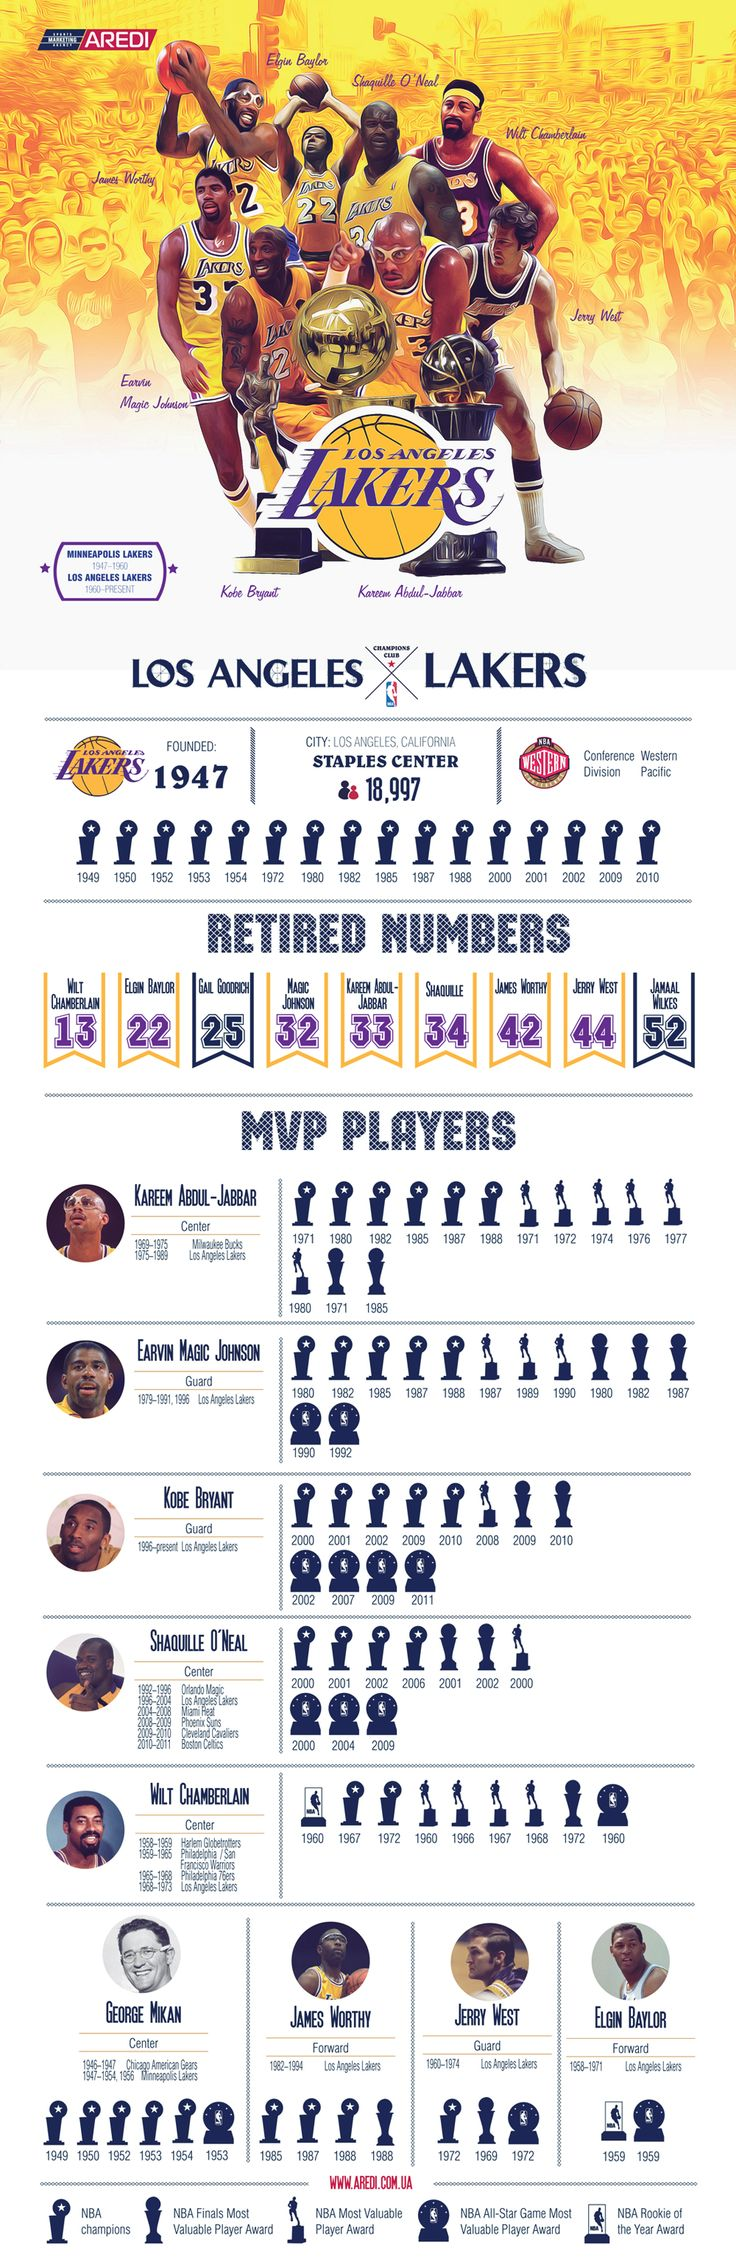 Los Angeles Lakers infographic, design, sport, basketball, create, art, illustration, NBA, Legends, champion